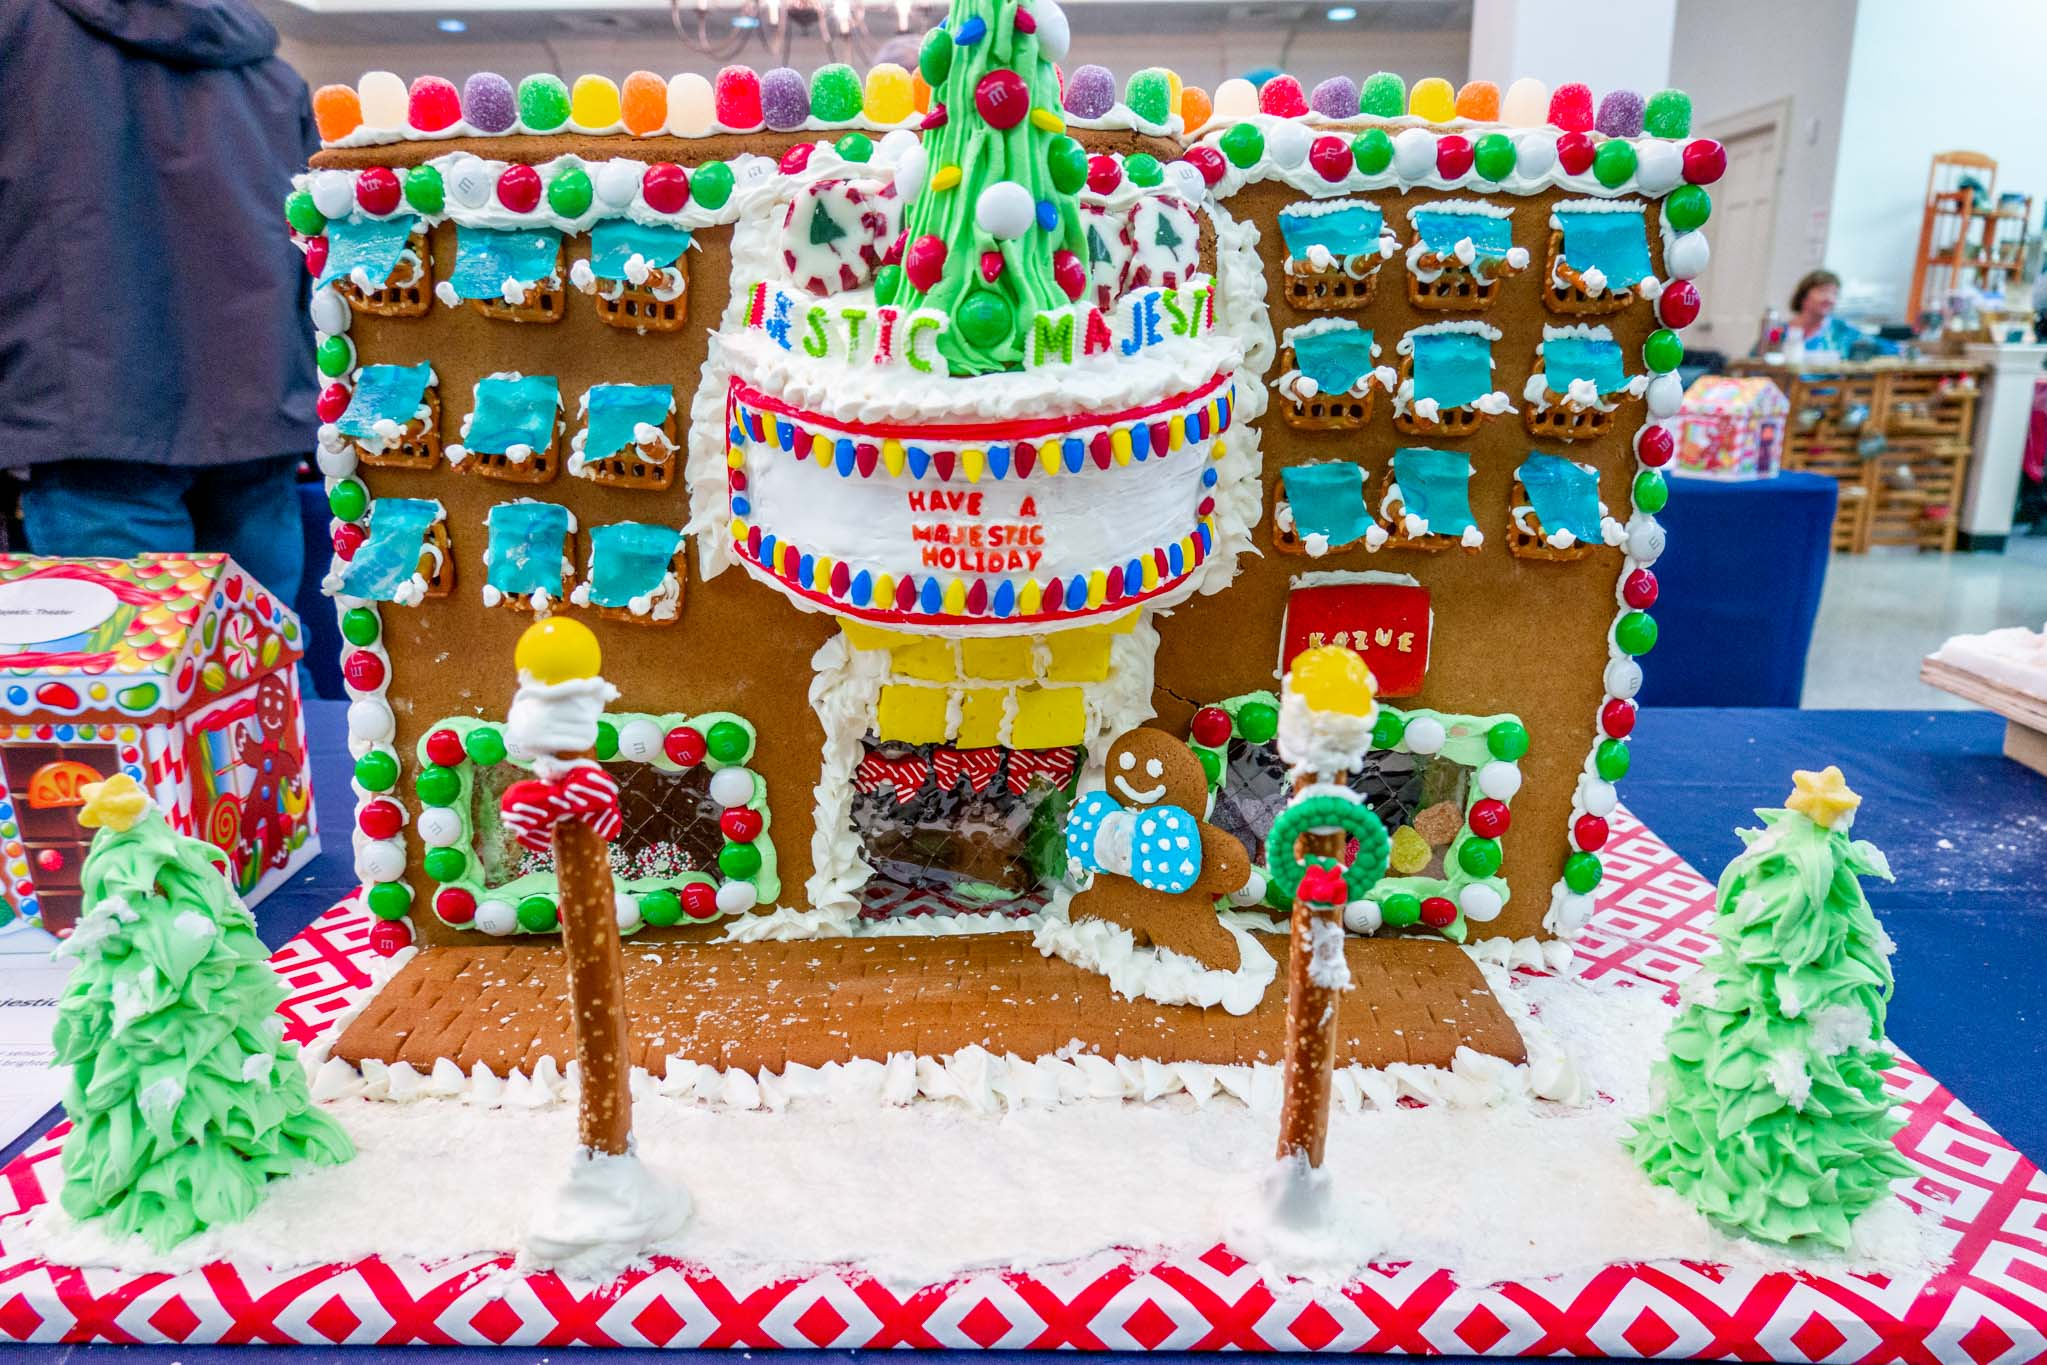 Candy-covered gingerbread house